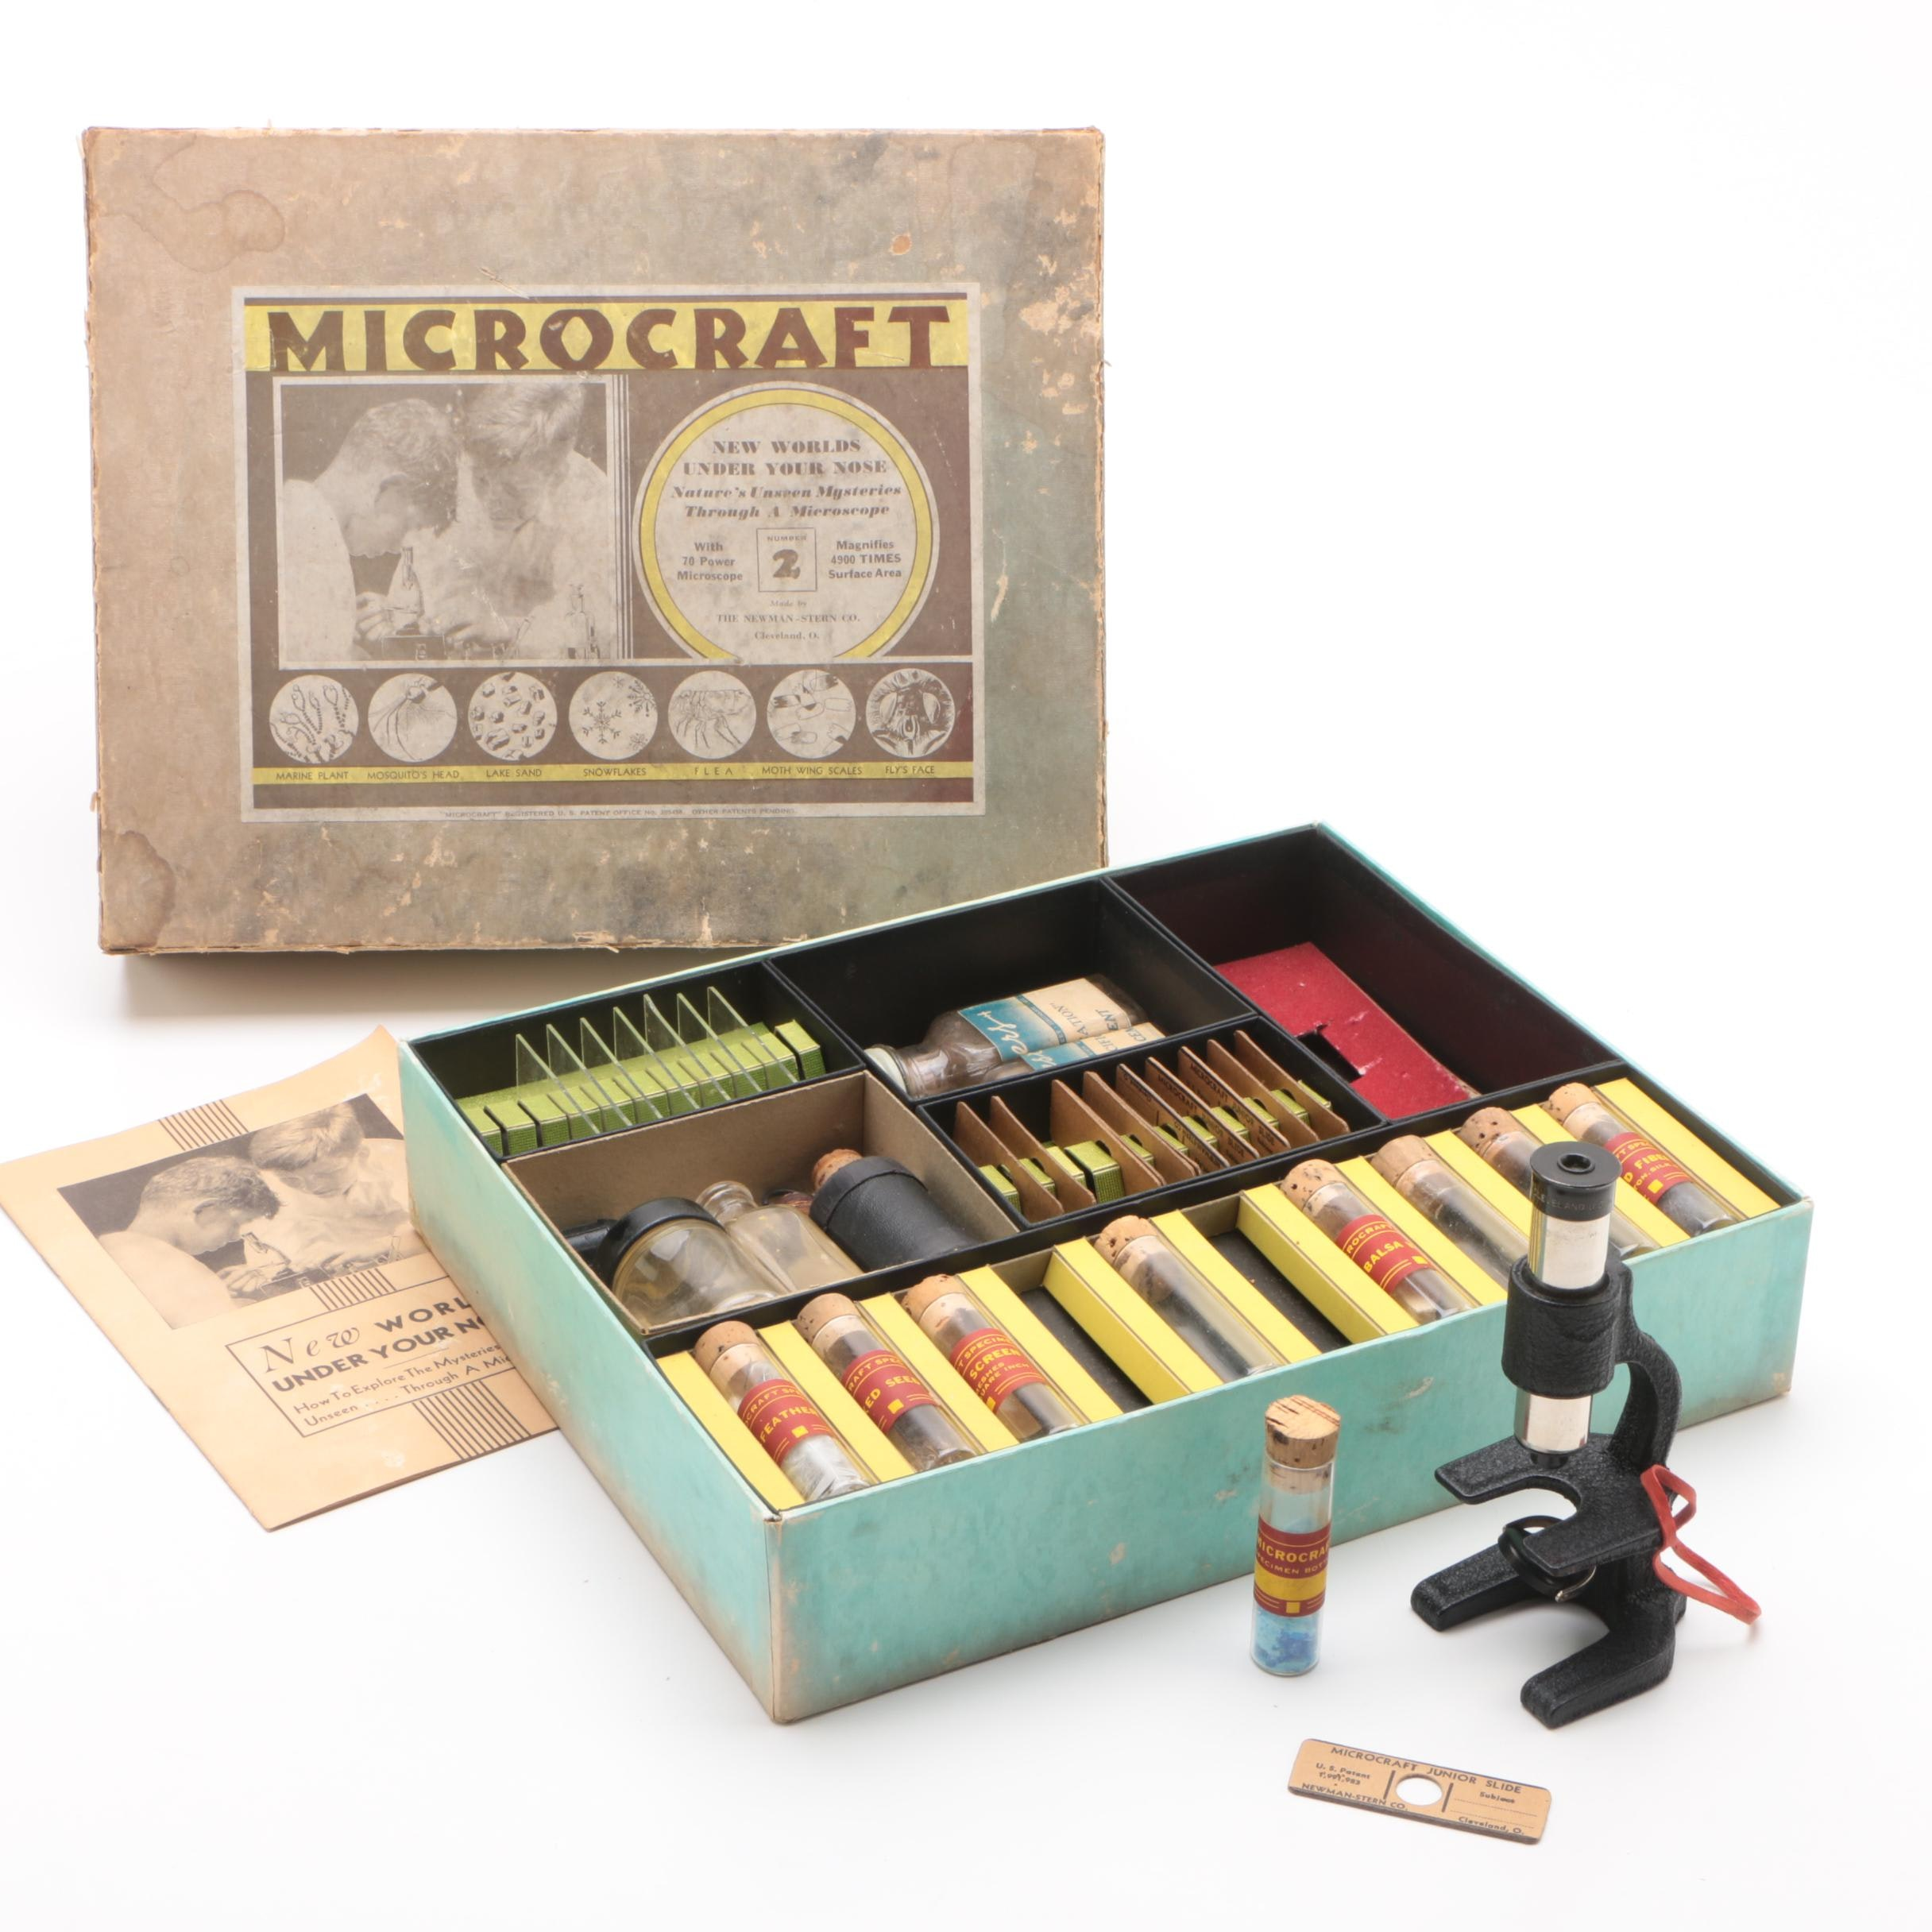 Microcraft #2 Microscope Lab Kit by The Newman-Stern Co., Late 1950s